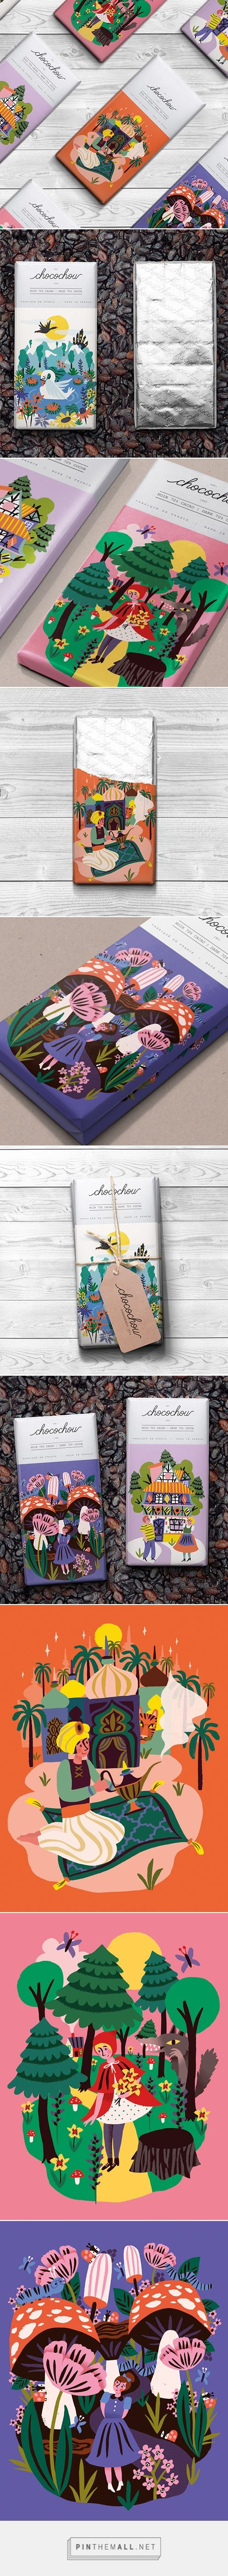 Graphic design, illustration and packaging for Fairytale Chocolate Bars…